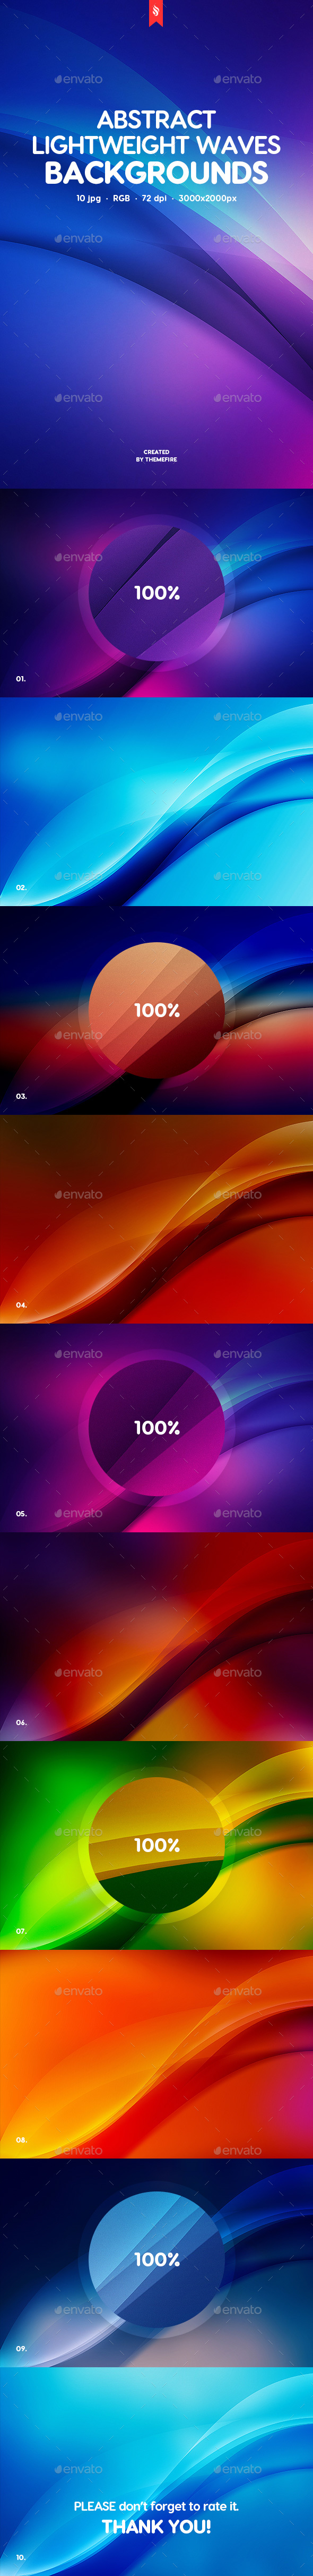 Lightweight Waves Backgrounds - Abstract Backgrounds